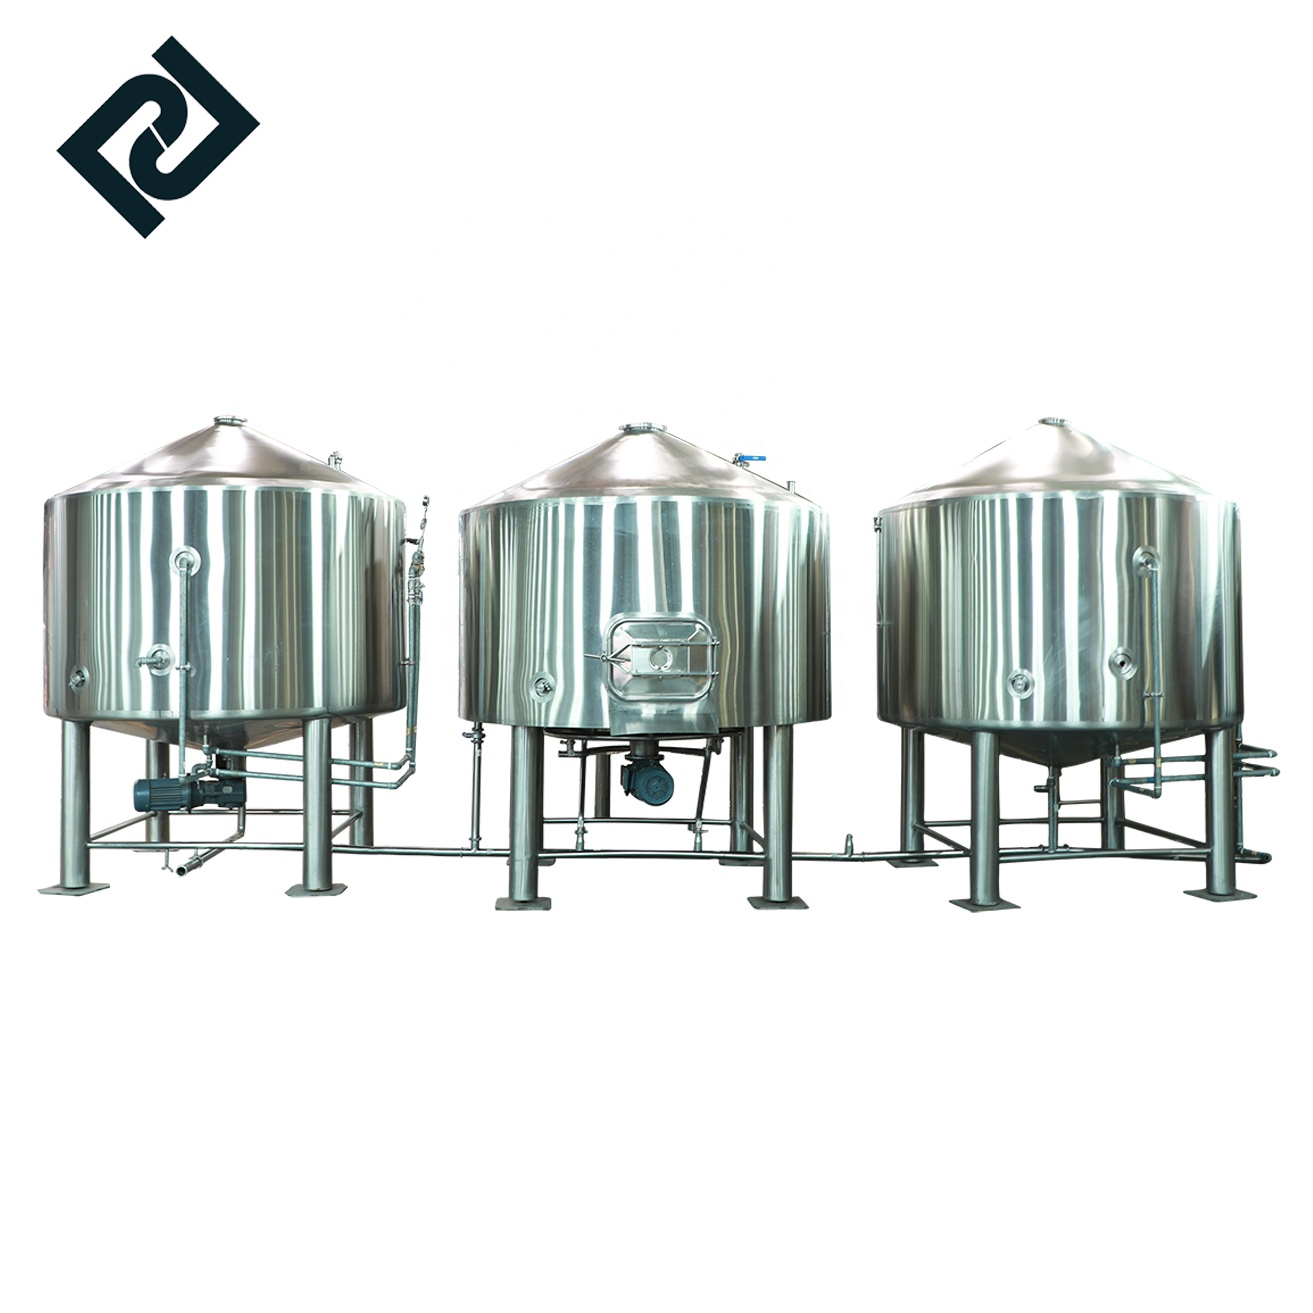 China Manufacturer for Starting A Micro Brewery - Customized beer brewing equipment of  brewery production system with fermentation tank equipment – Pijiang